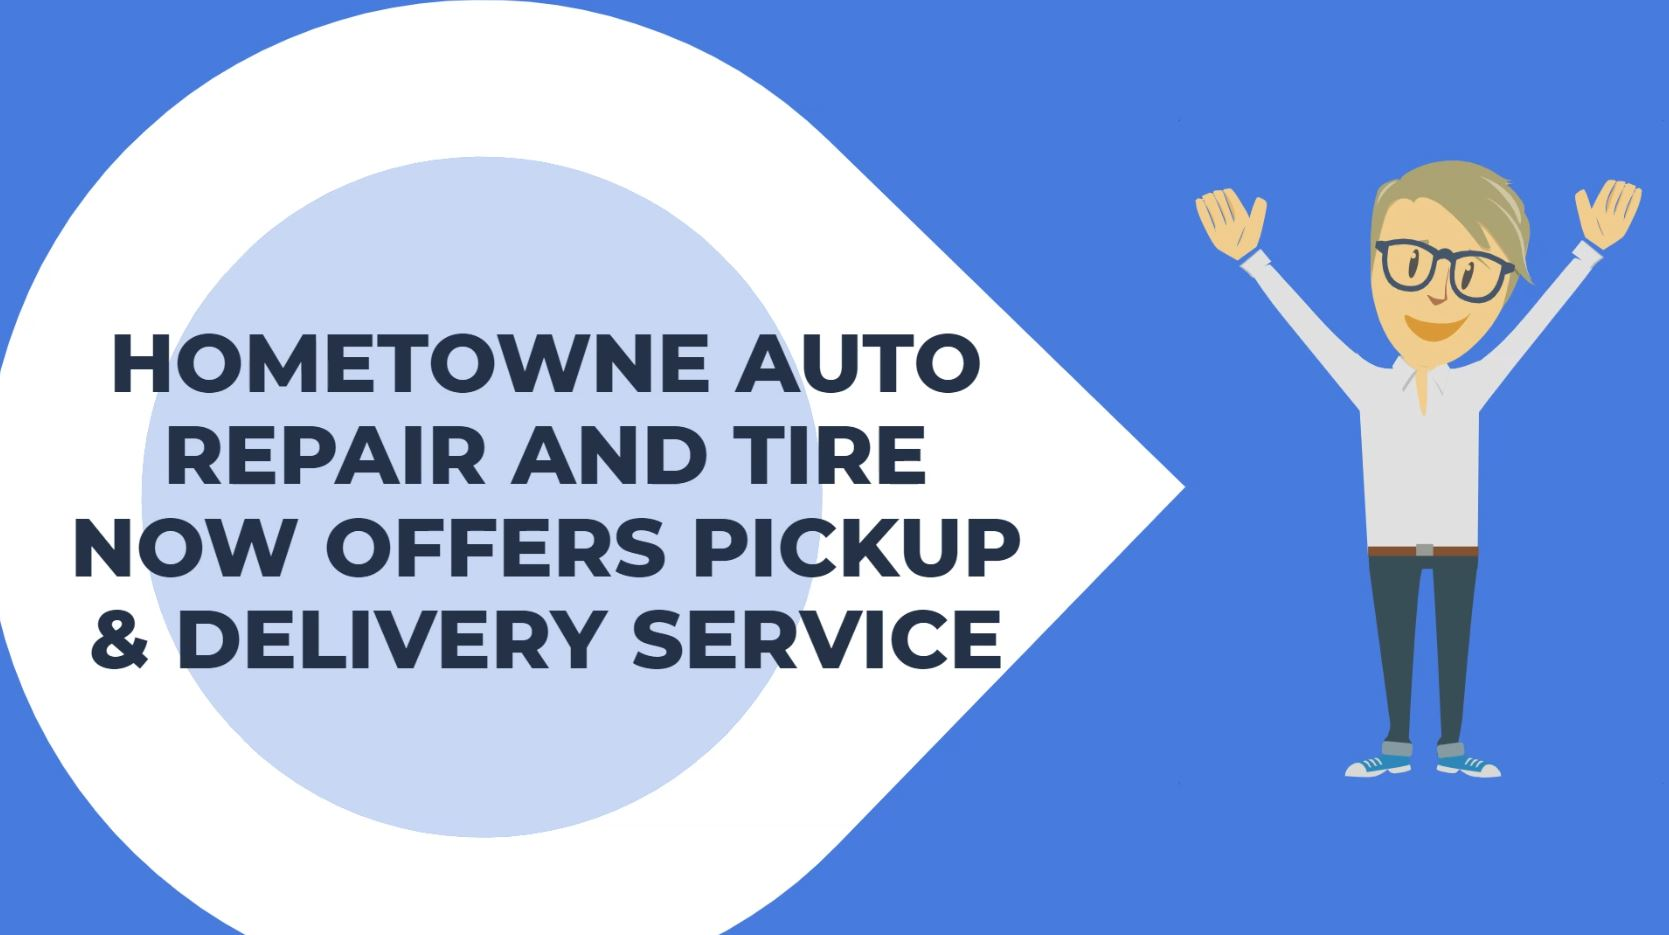 Pickup and delivery option through HomeTowne Auto Repair